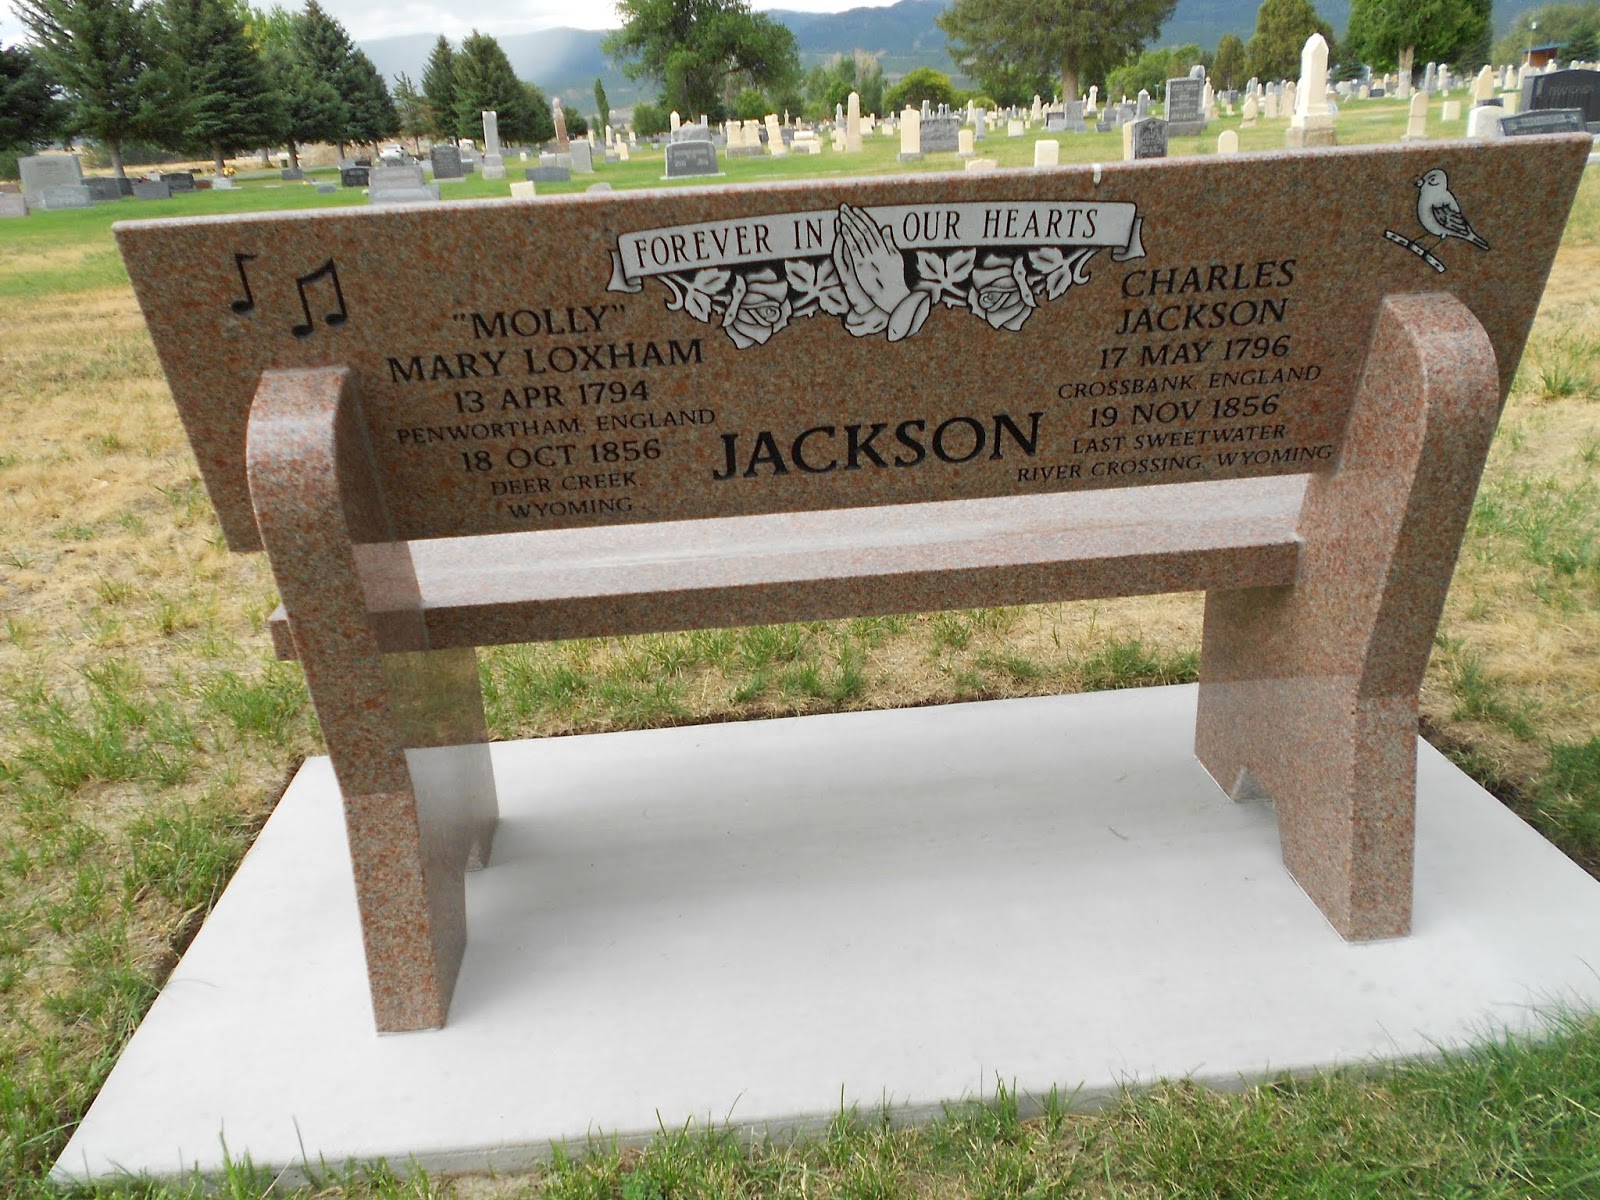 Mt  Pleasant Pioneer : Memorial Bench Placed at the Mt